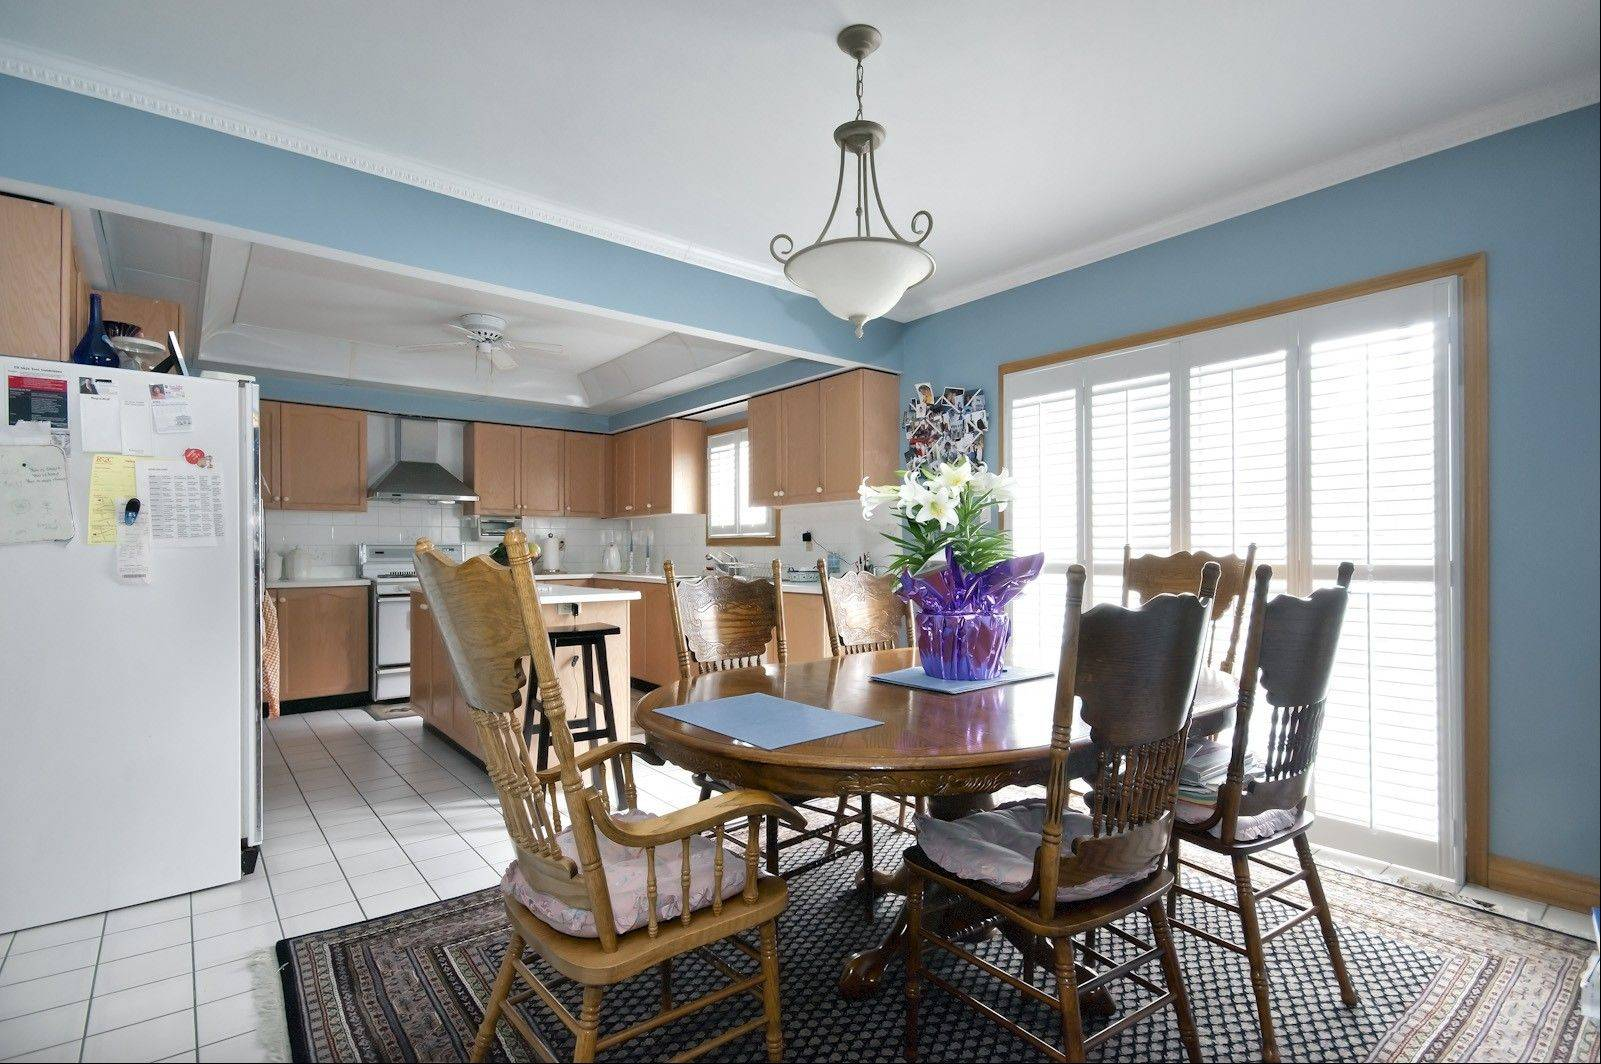 The family's kitchen had good bones, including a functional U-shaped configuration and an island work top seen here before the remodeling project. Therefore, the redesign was more about rejuvenating than renovating.